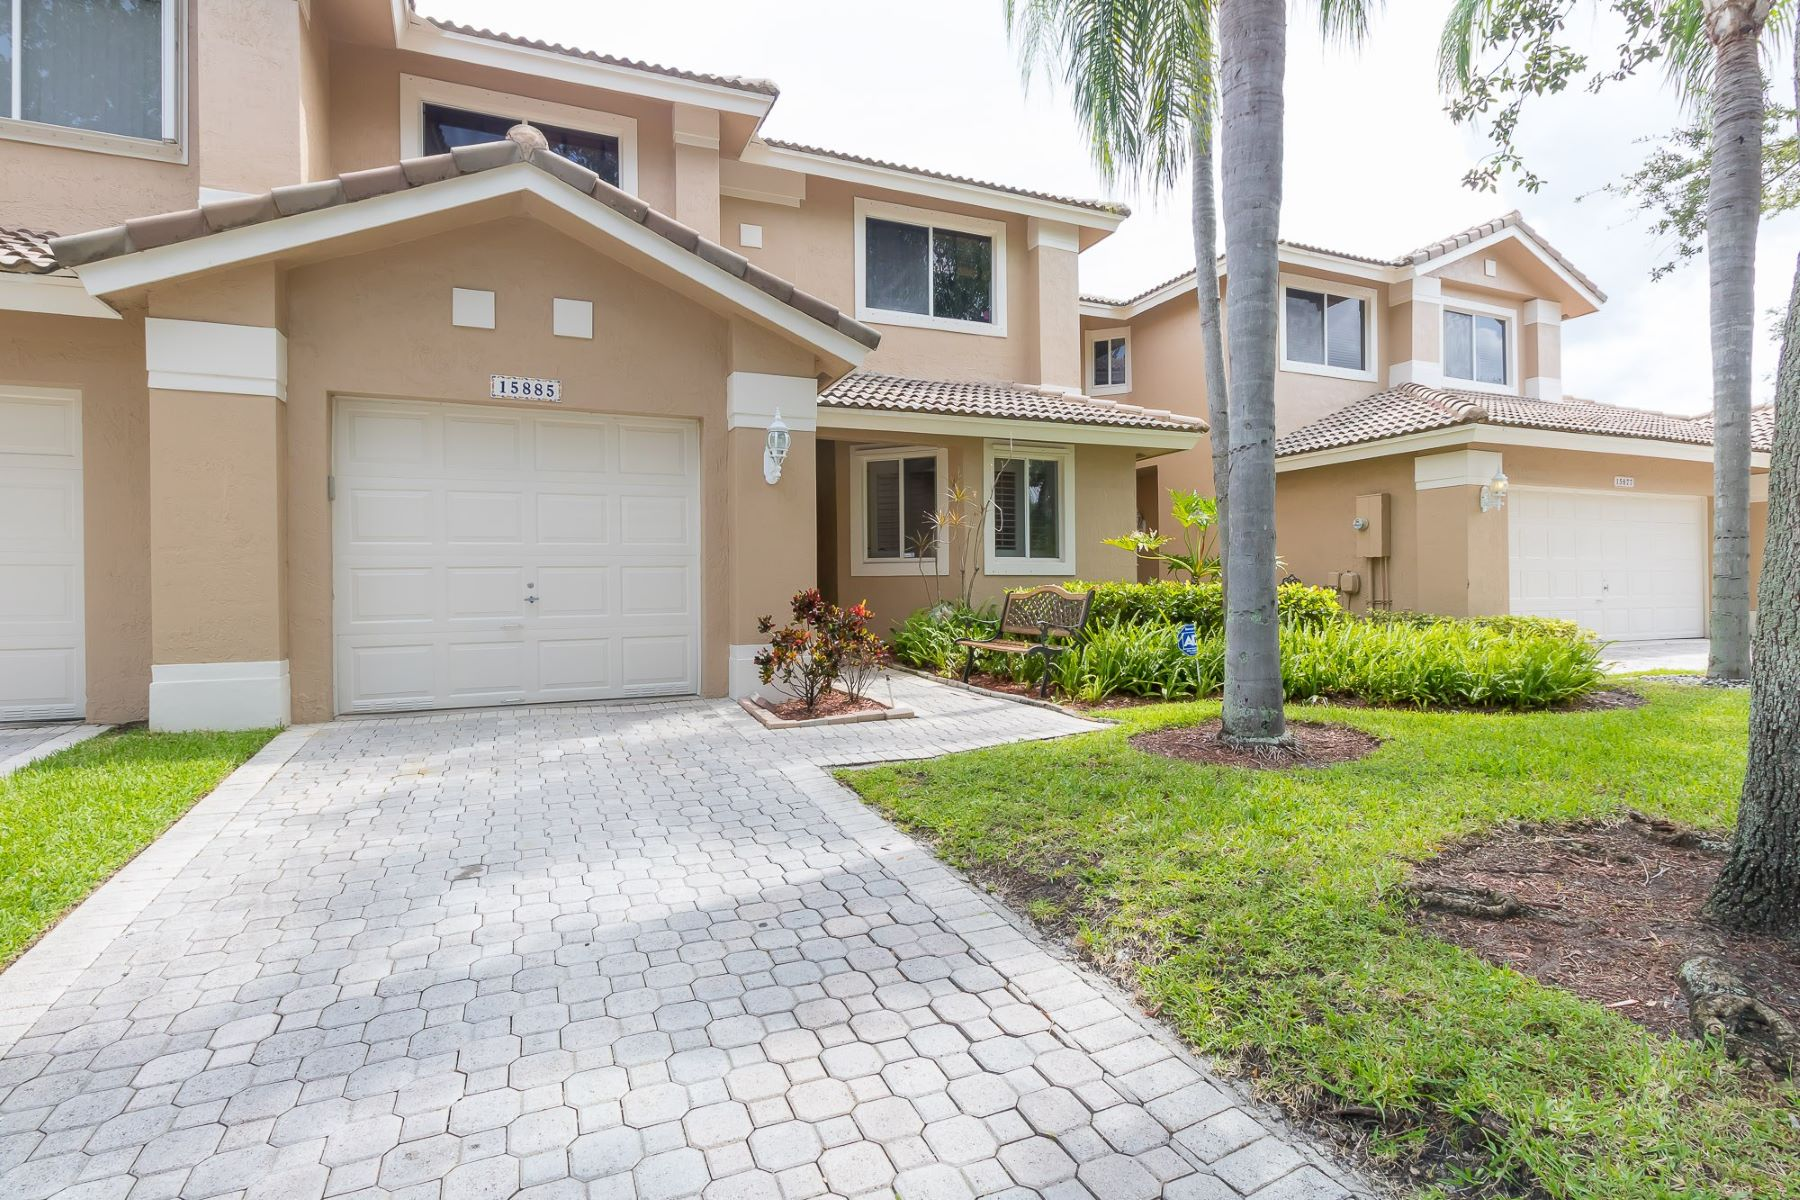 townhouses for Active at 15885 Sw 11th St #3-32 Pembroke Pines, Florida 33027 United States